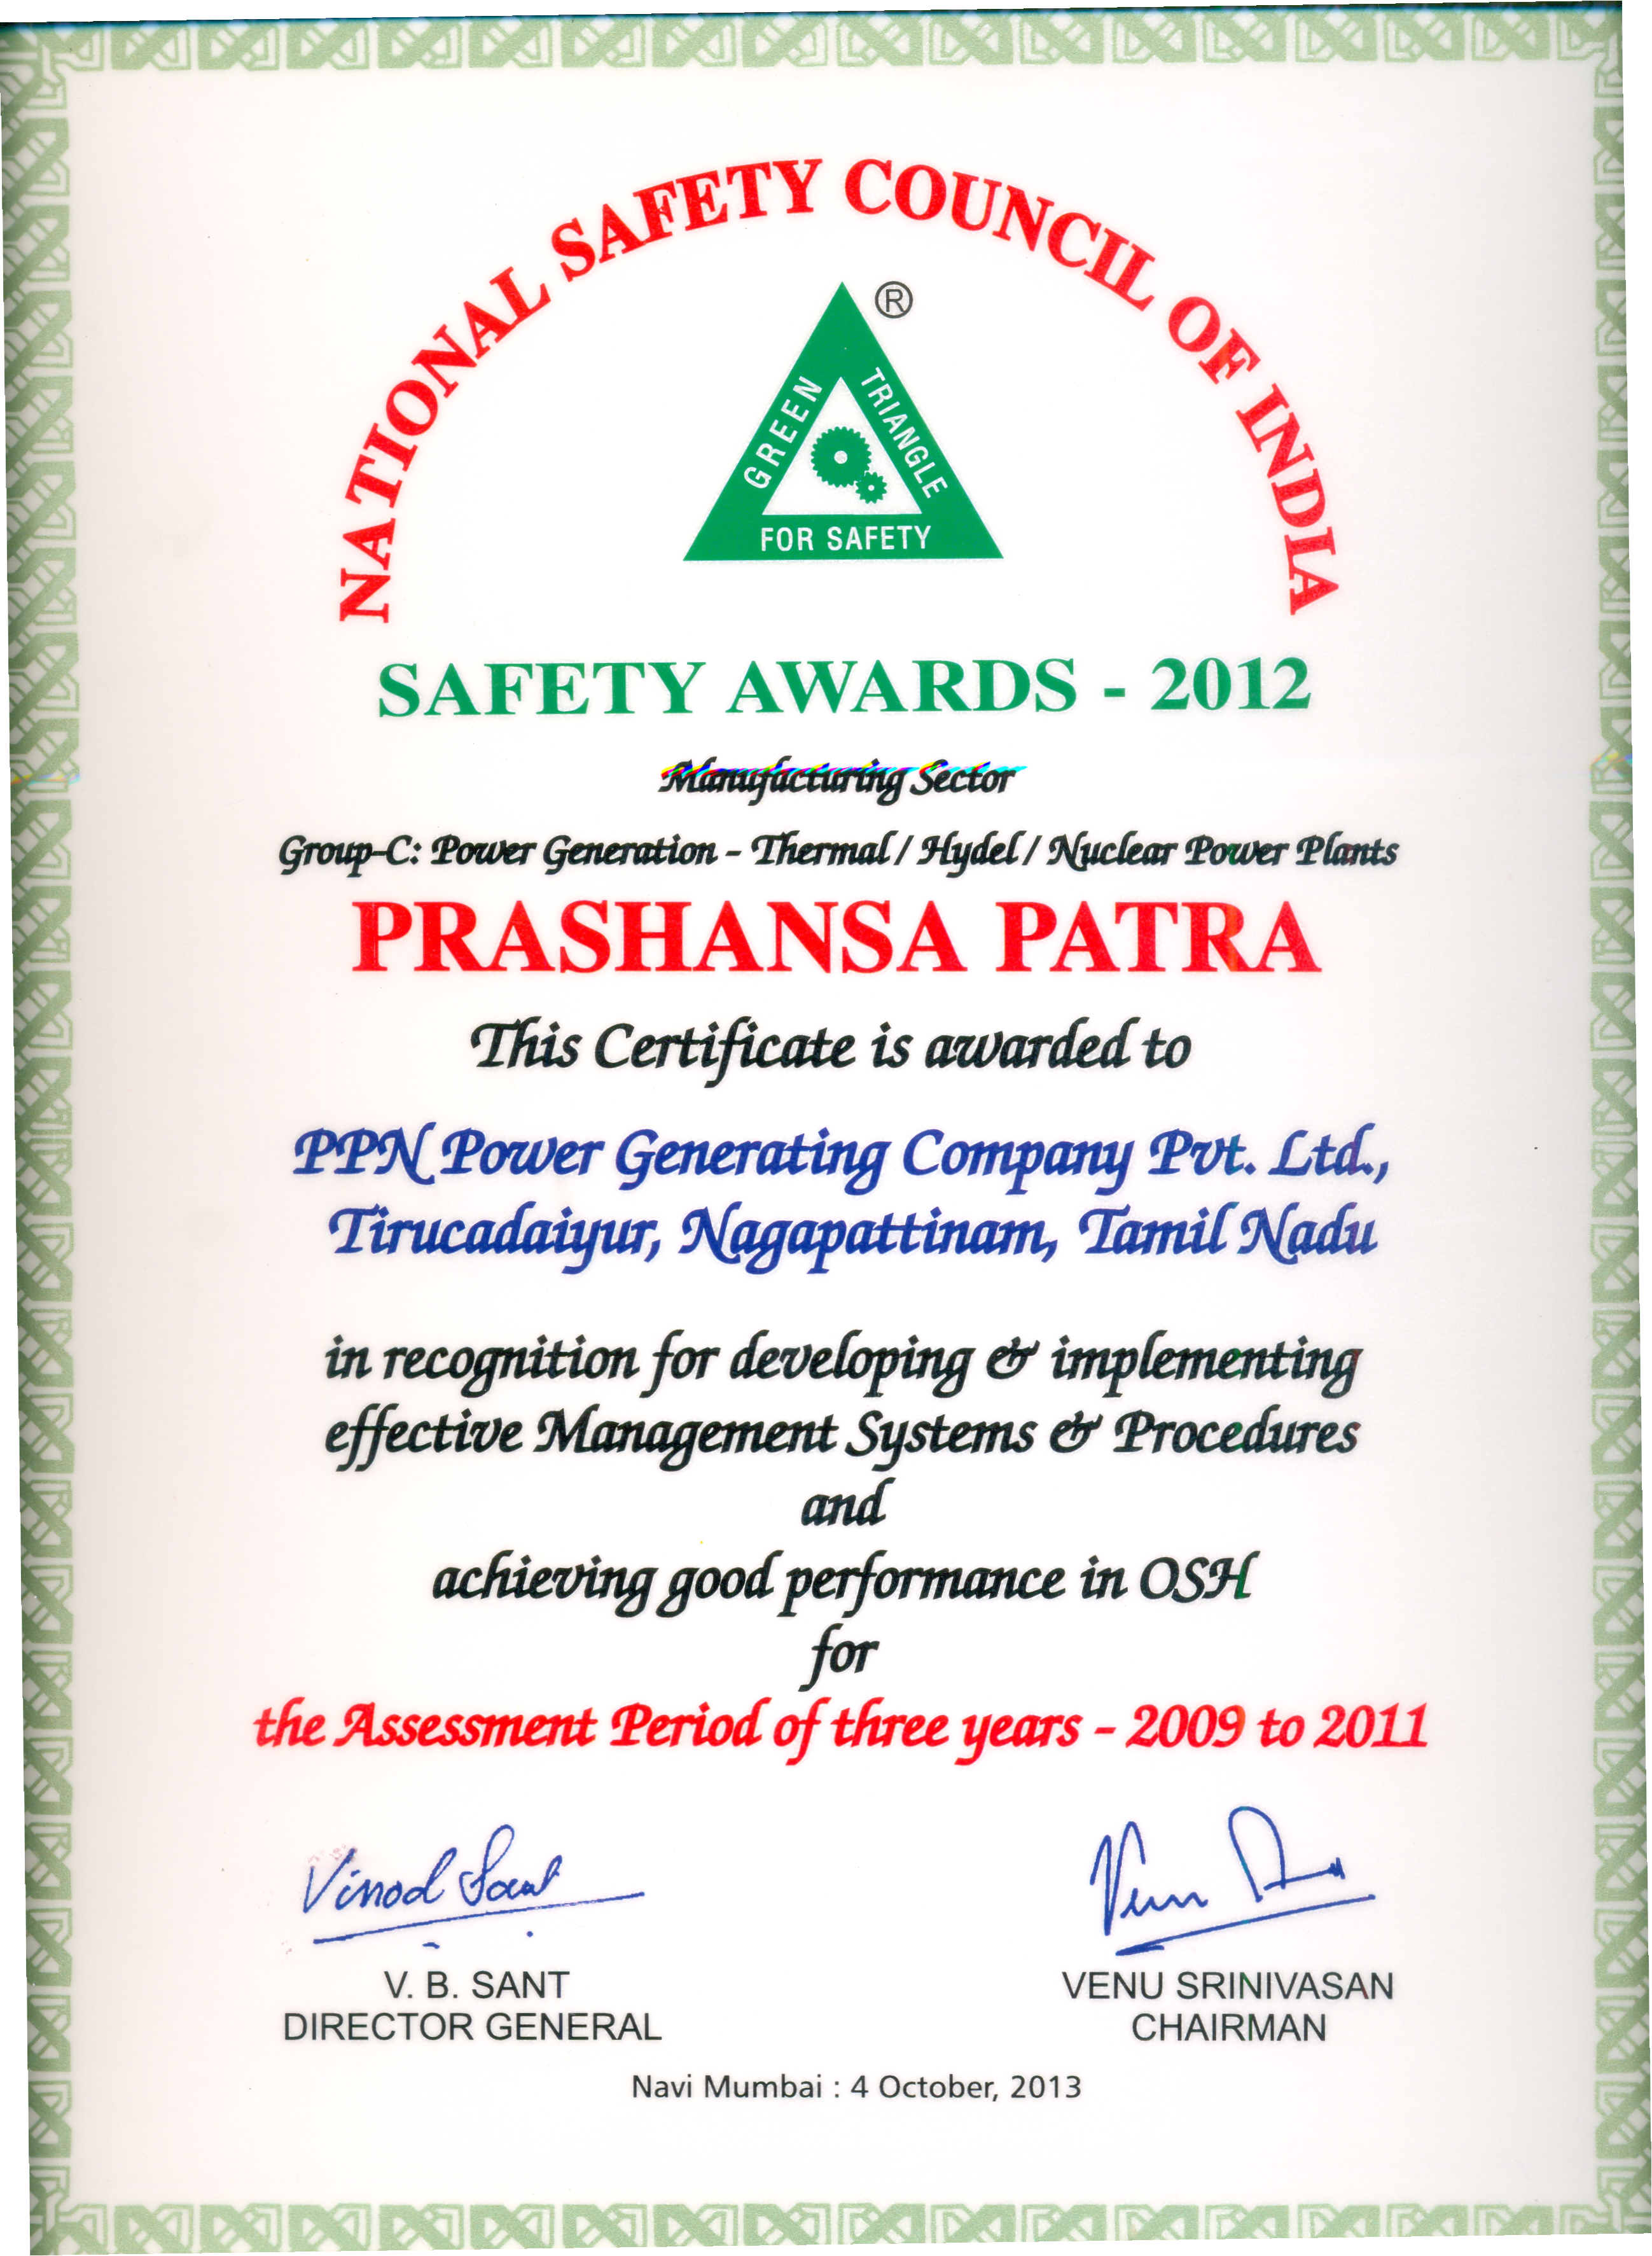 Ppn power generating company private limited national safety council of india safety awards for 2012 prashansa patra xflitez Images